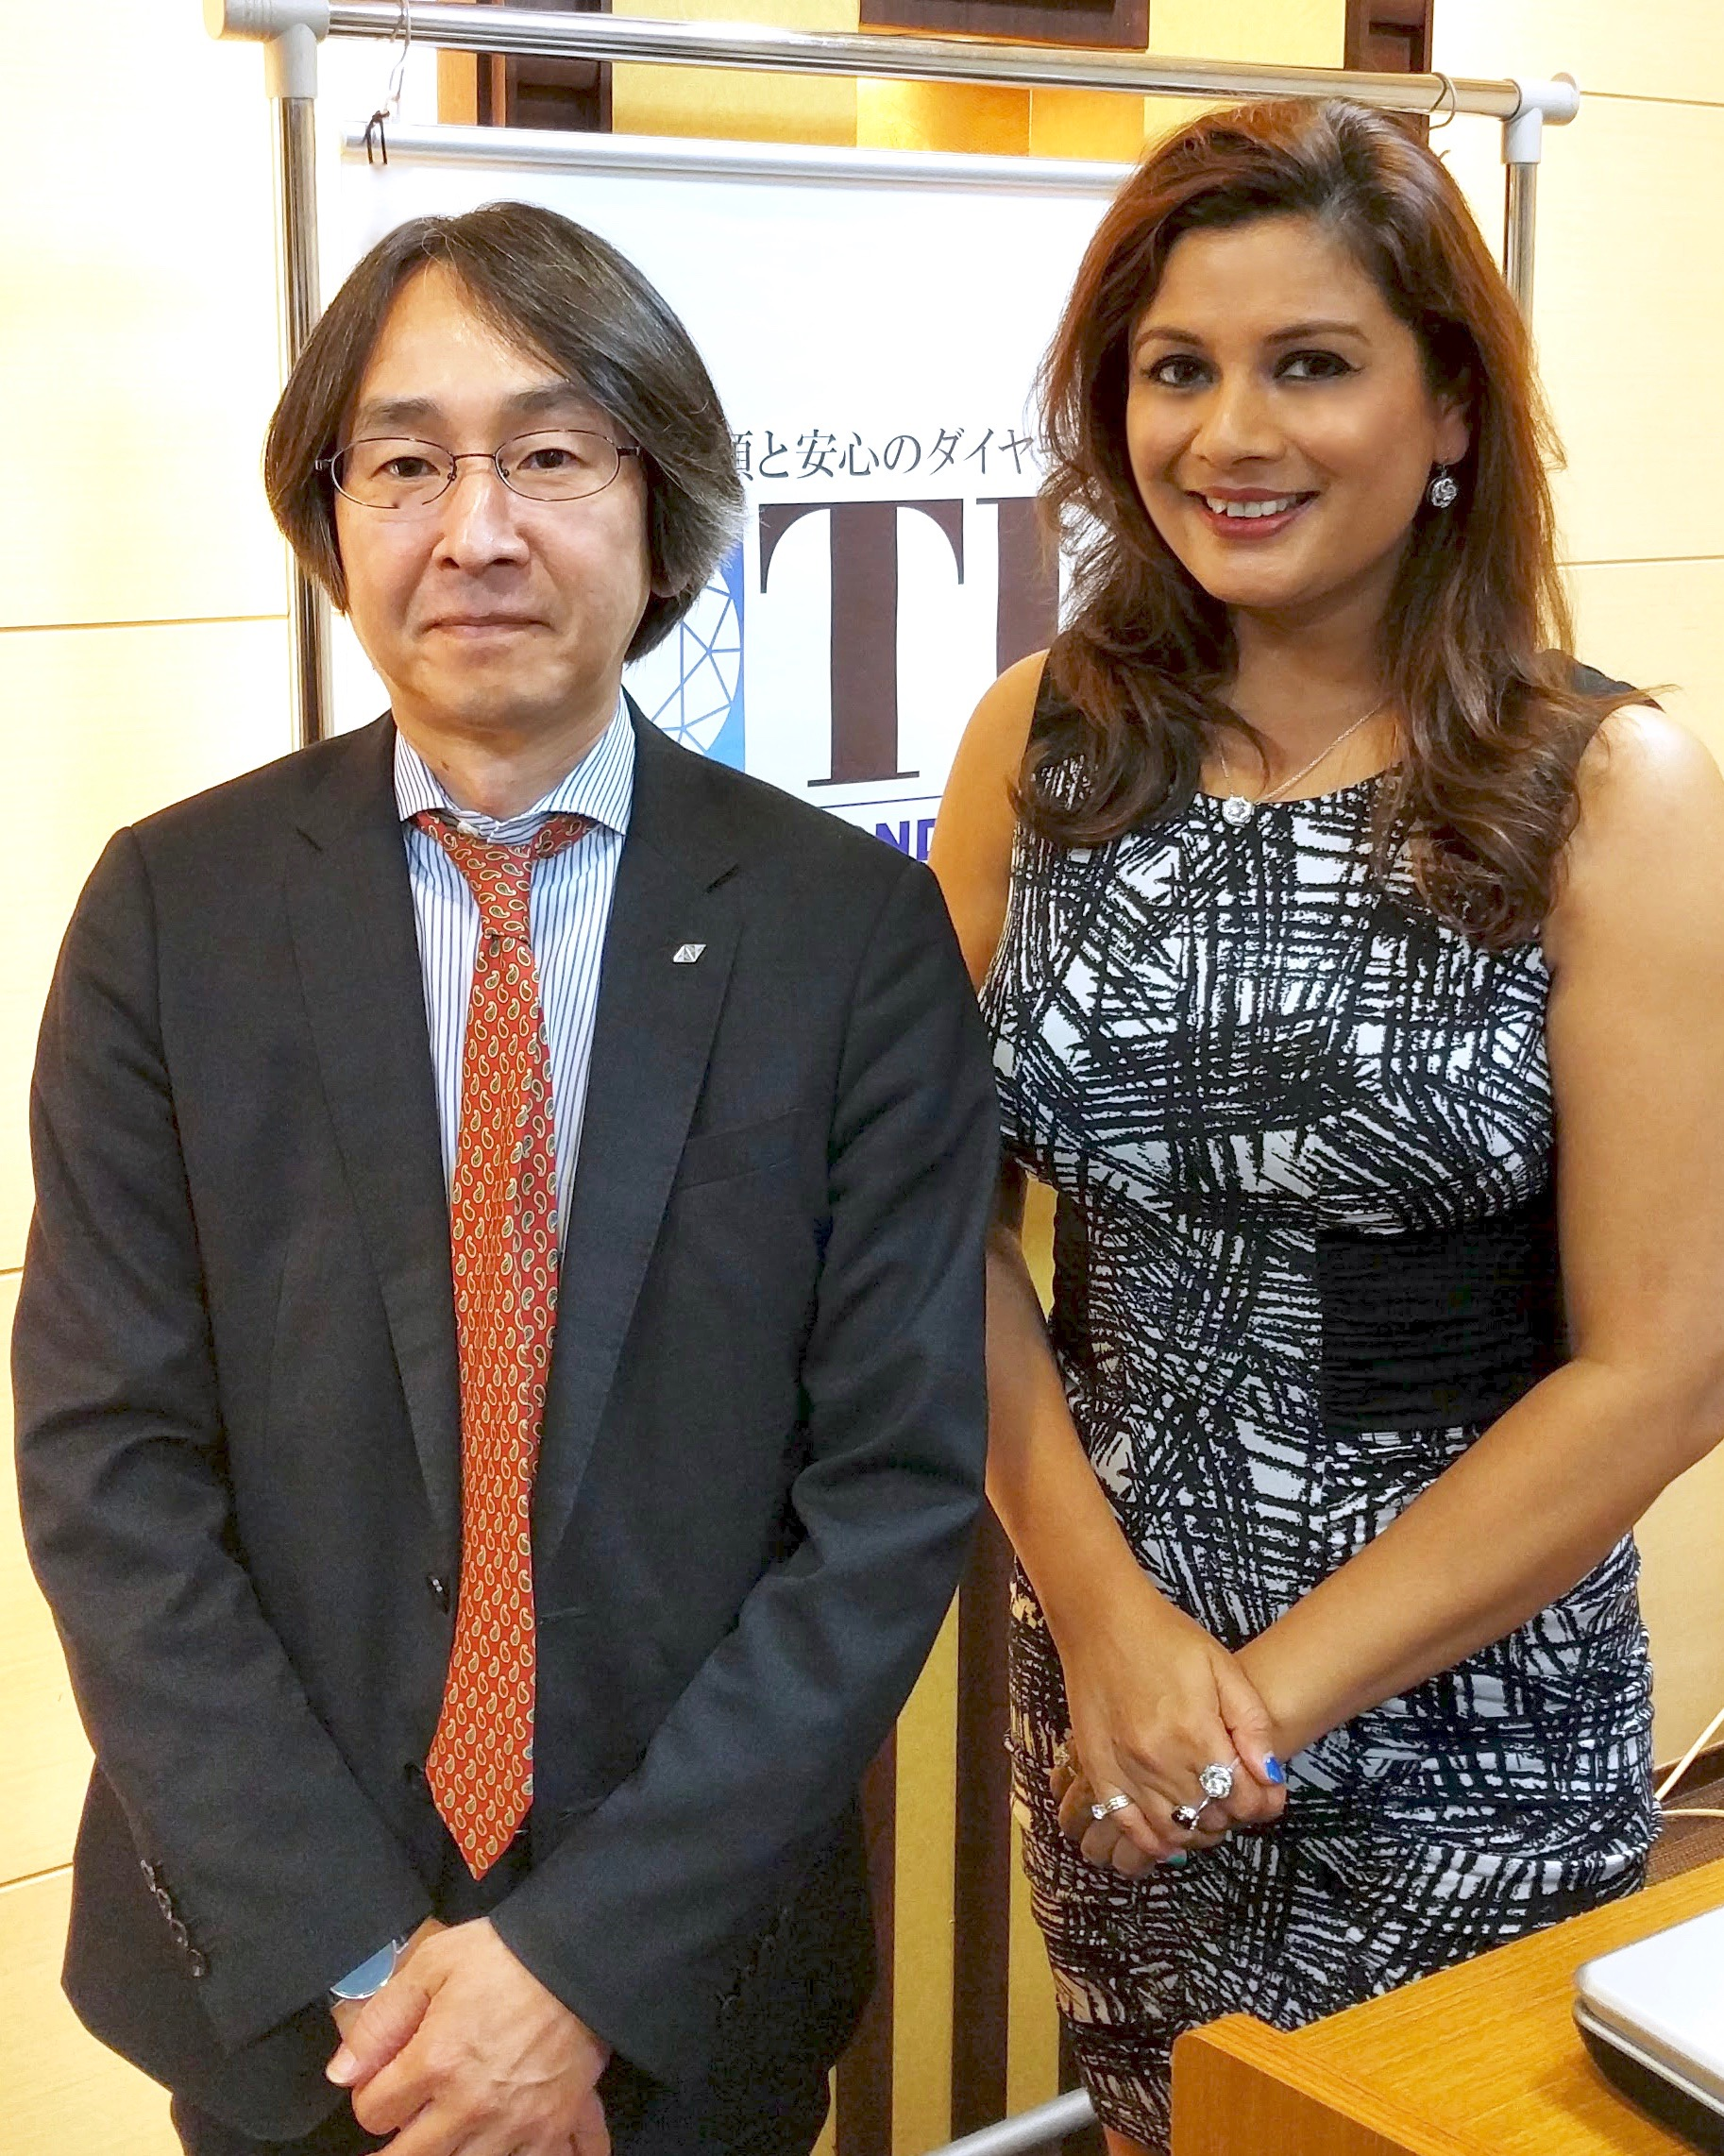 Sunao Nakao (Nagahori Corporation) and Reena Ahluwalia at the Tokyo Diamond Exchange.